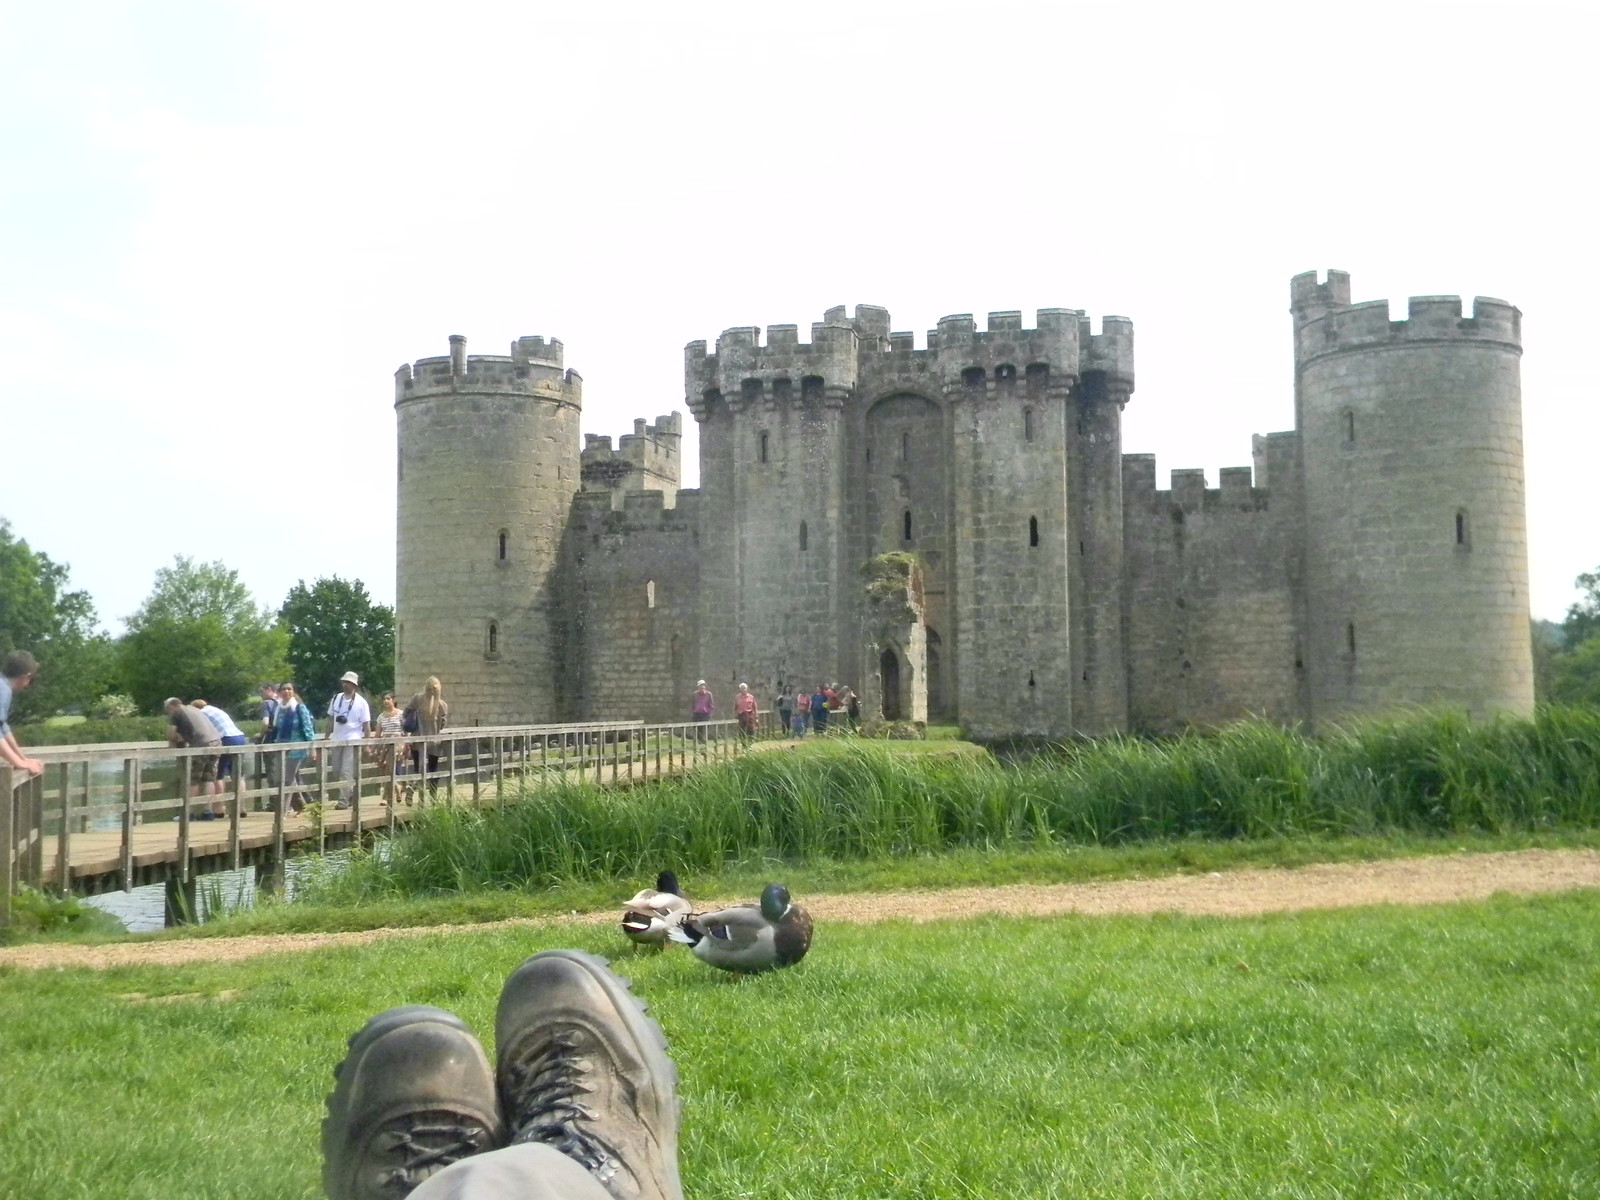 Feet, ducks and castle Robertbridge (short) Circular